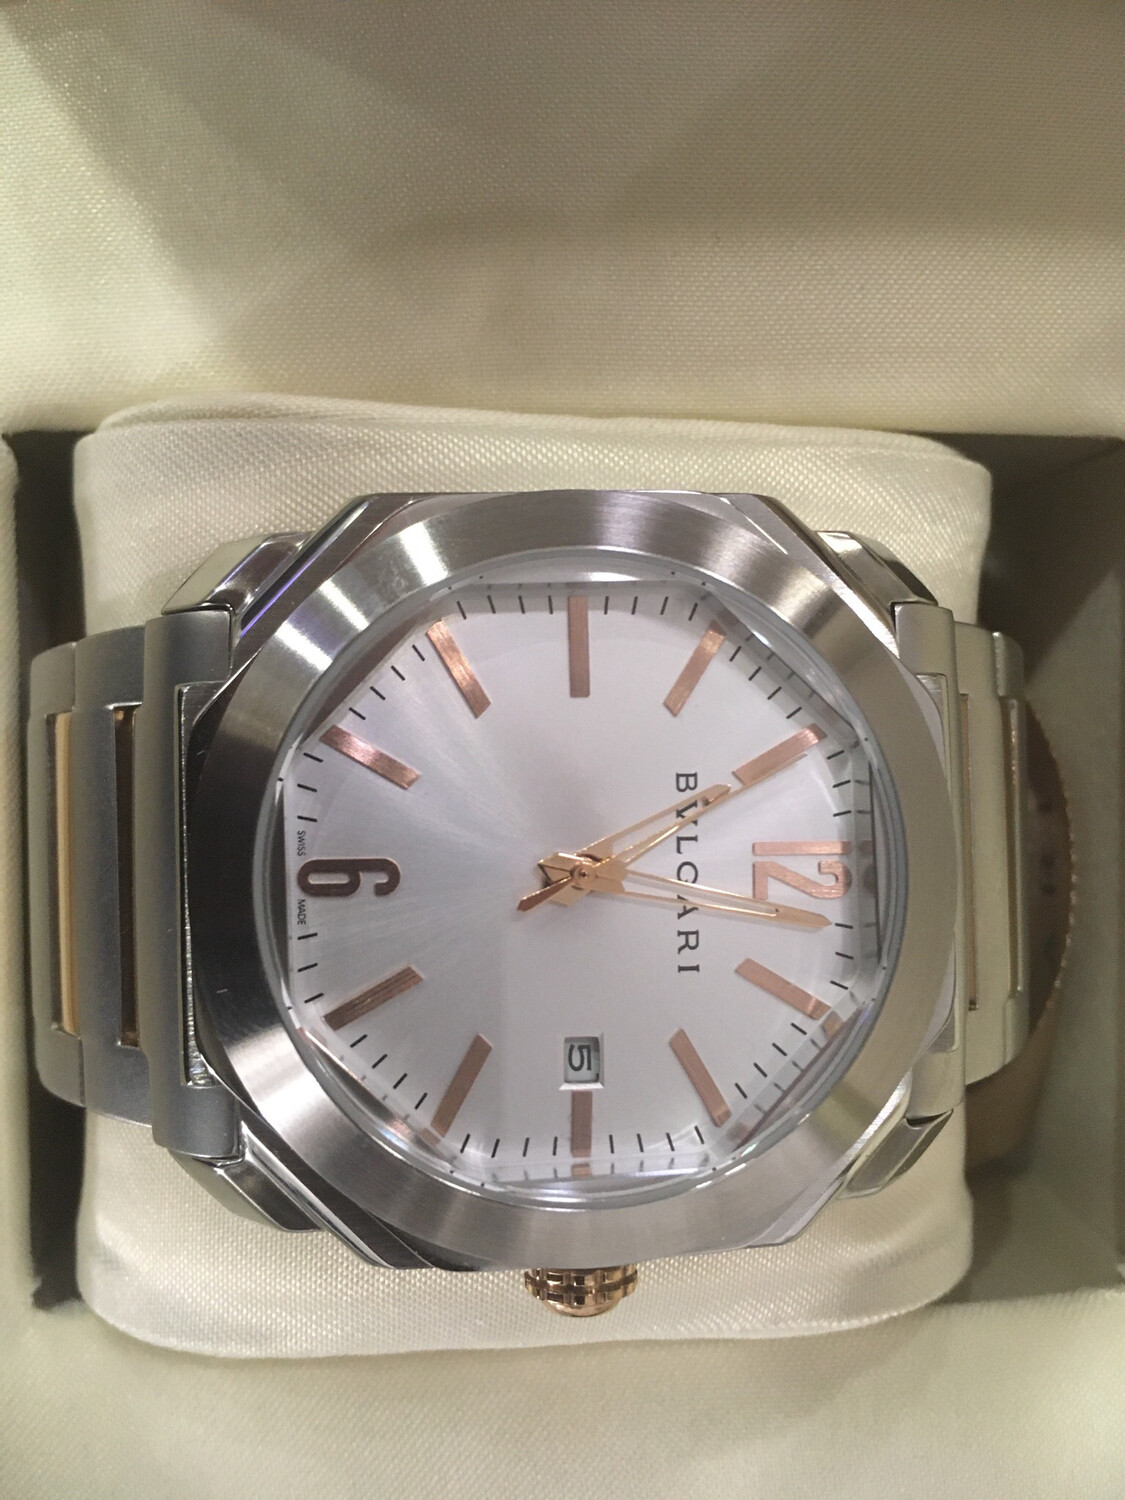 Bvlgari Octo watch mens automatic